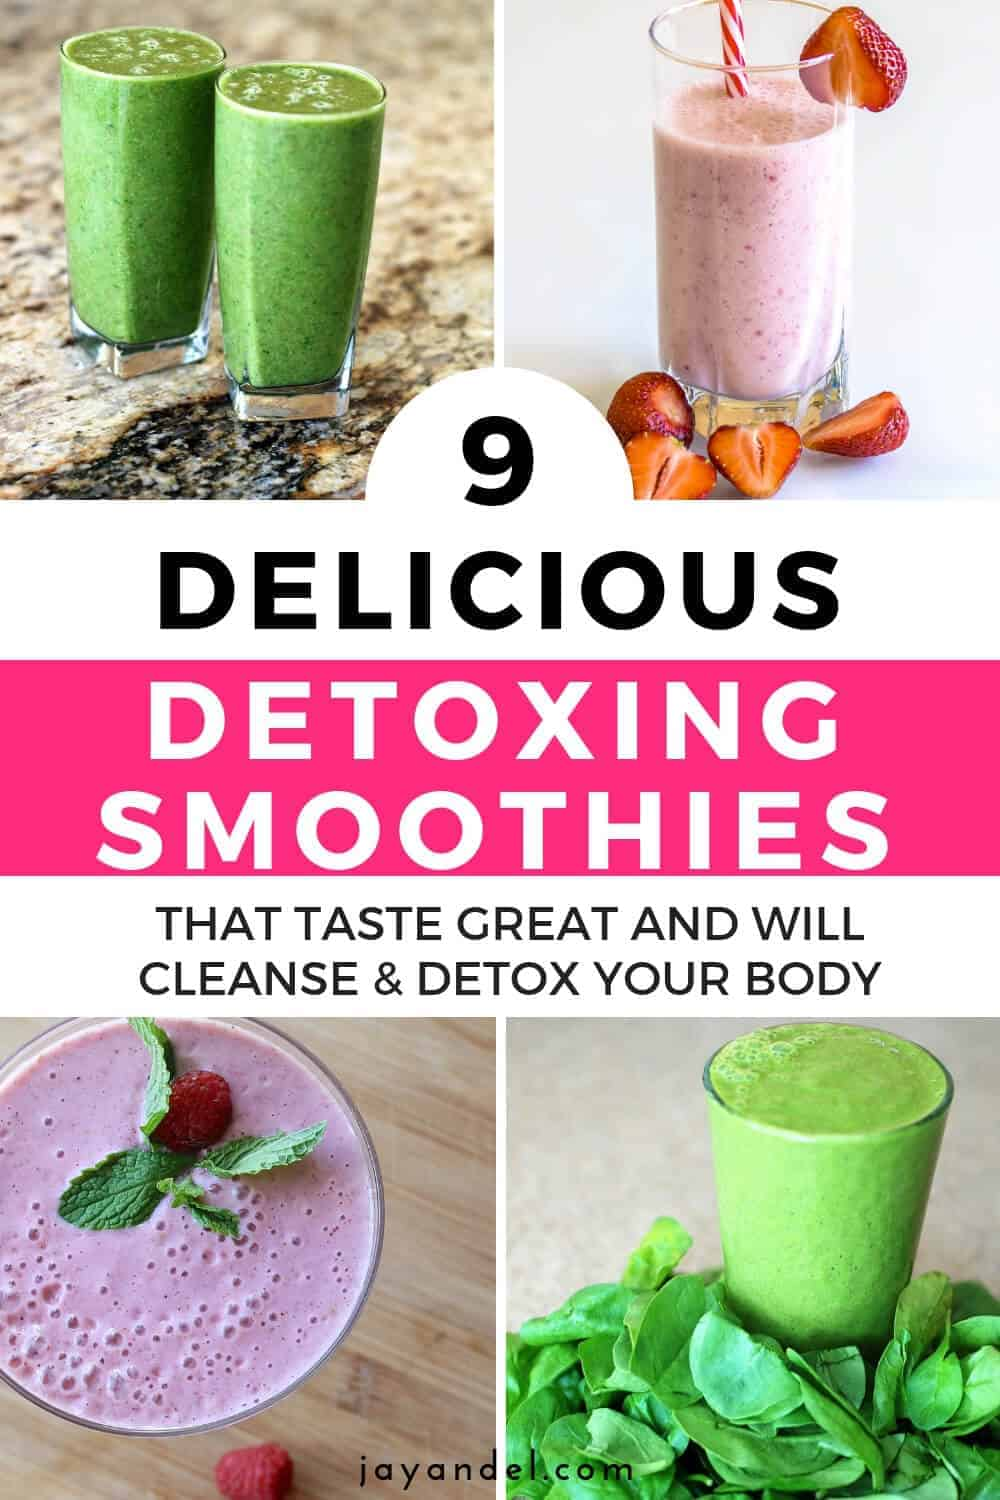 9 detox smoothies to make at home